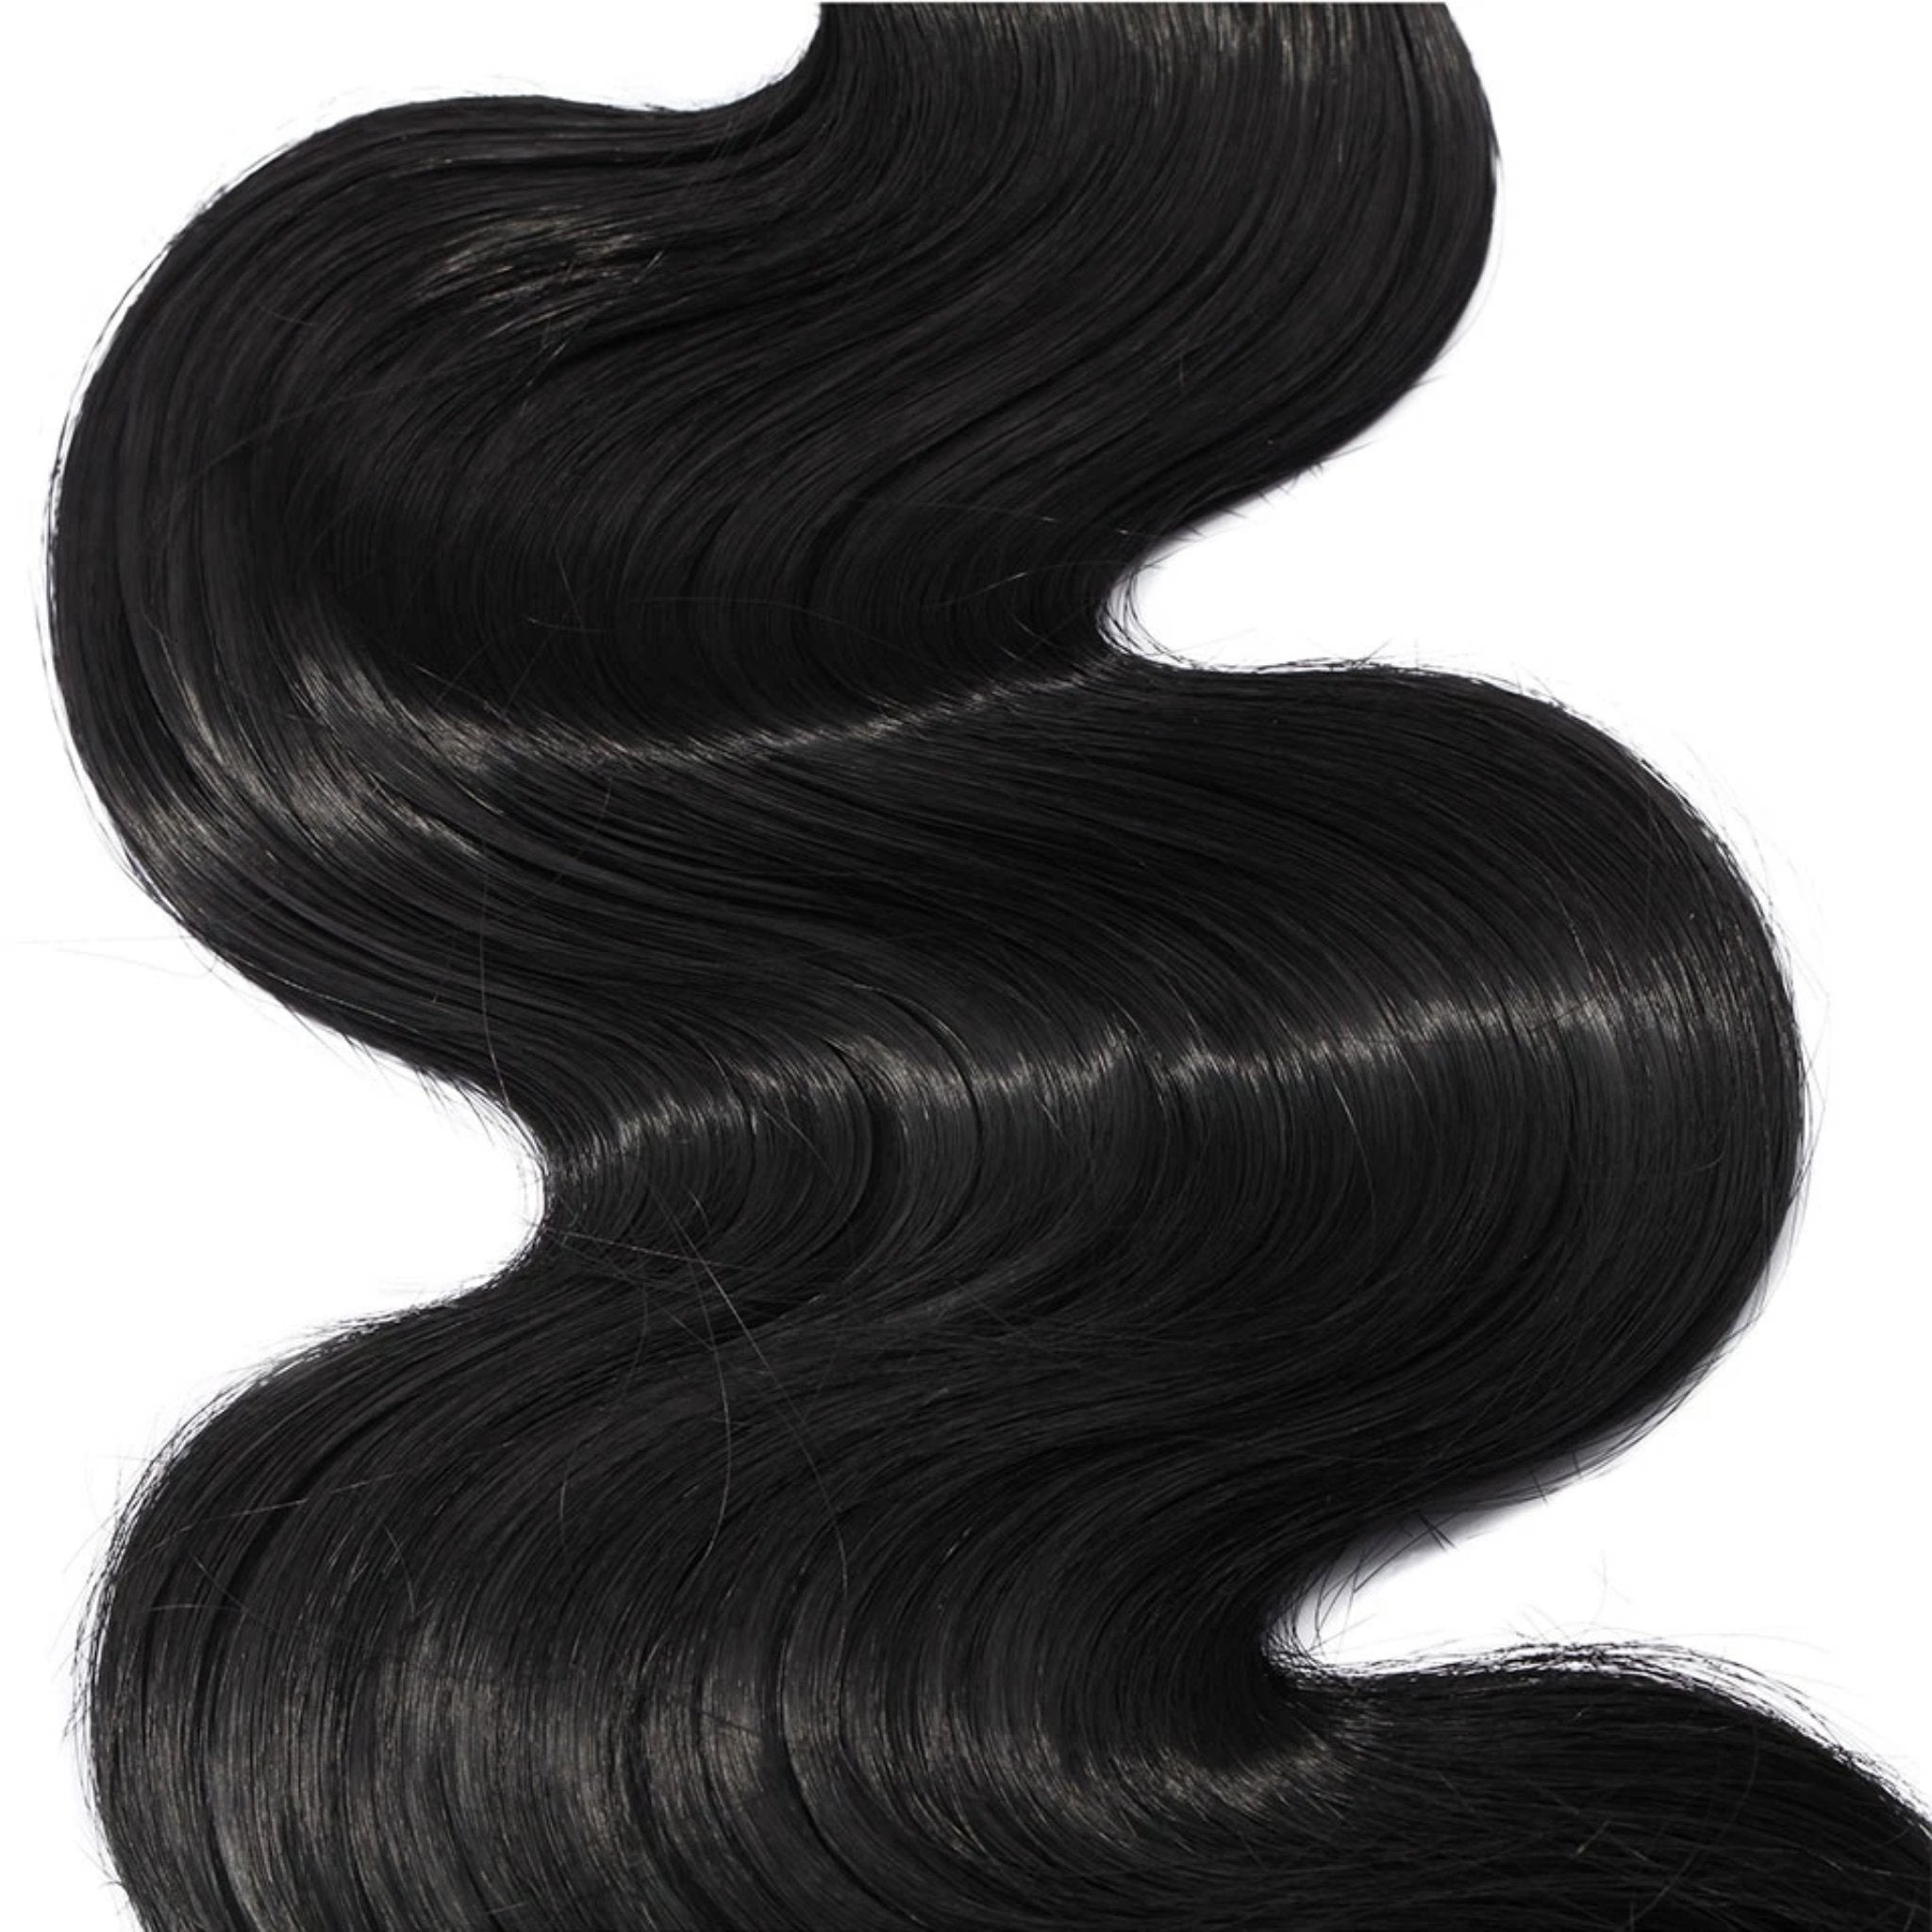 Wavy Natural Black Bundle Hair Extensions